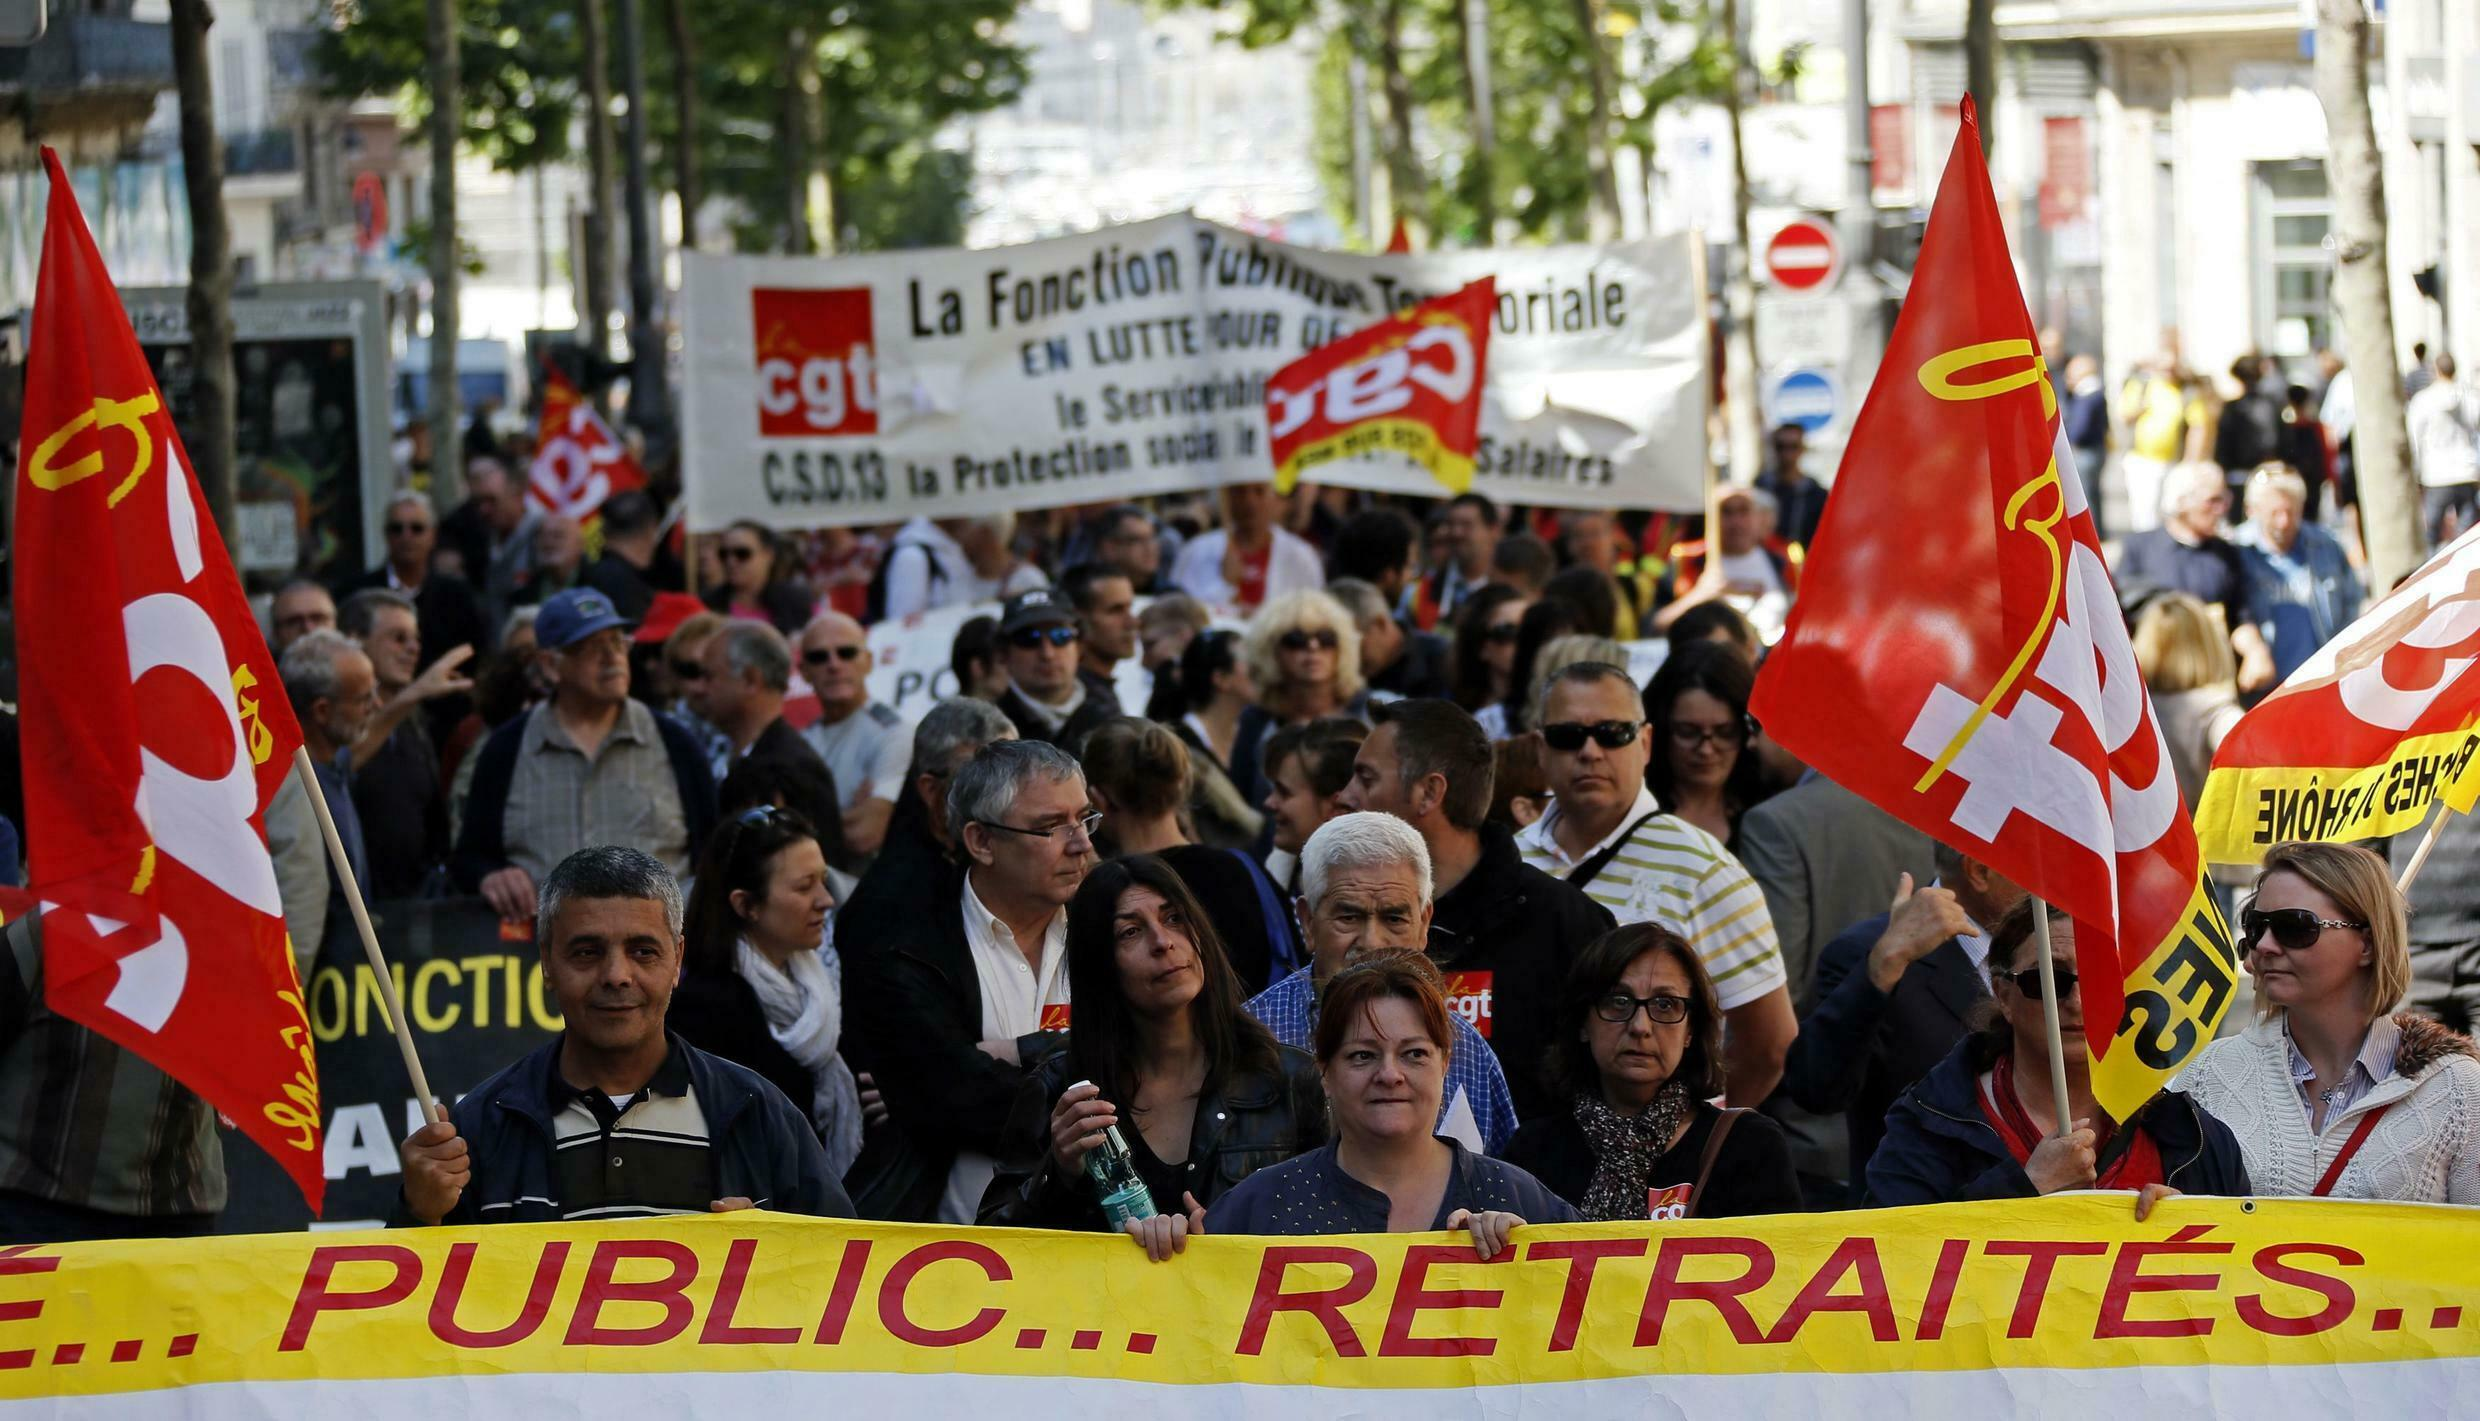 Civil servants demonstrate in France on 15 May, 2014